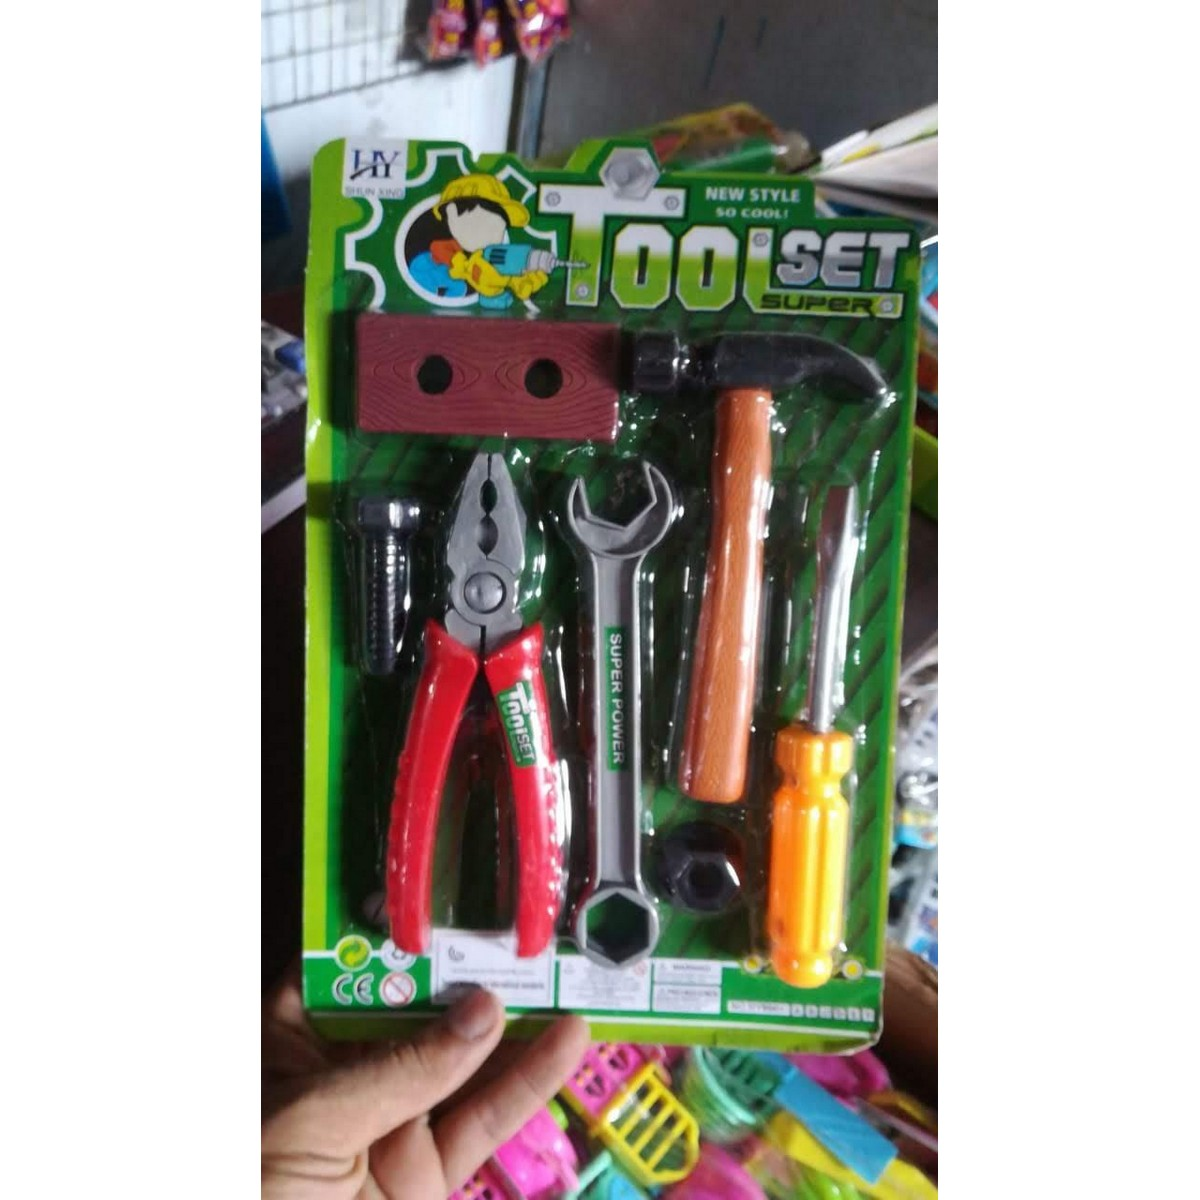 Super Tool Set - 7 Pieces - Plastic Toy Tool Kit Set For Kids - Green